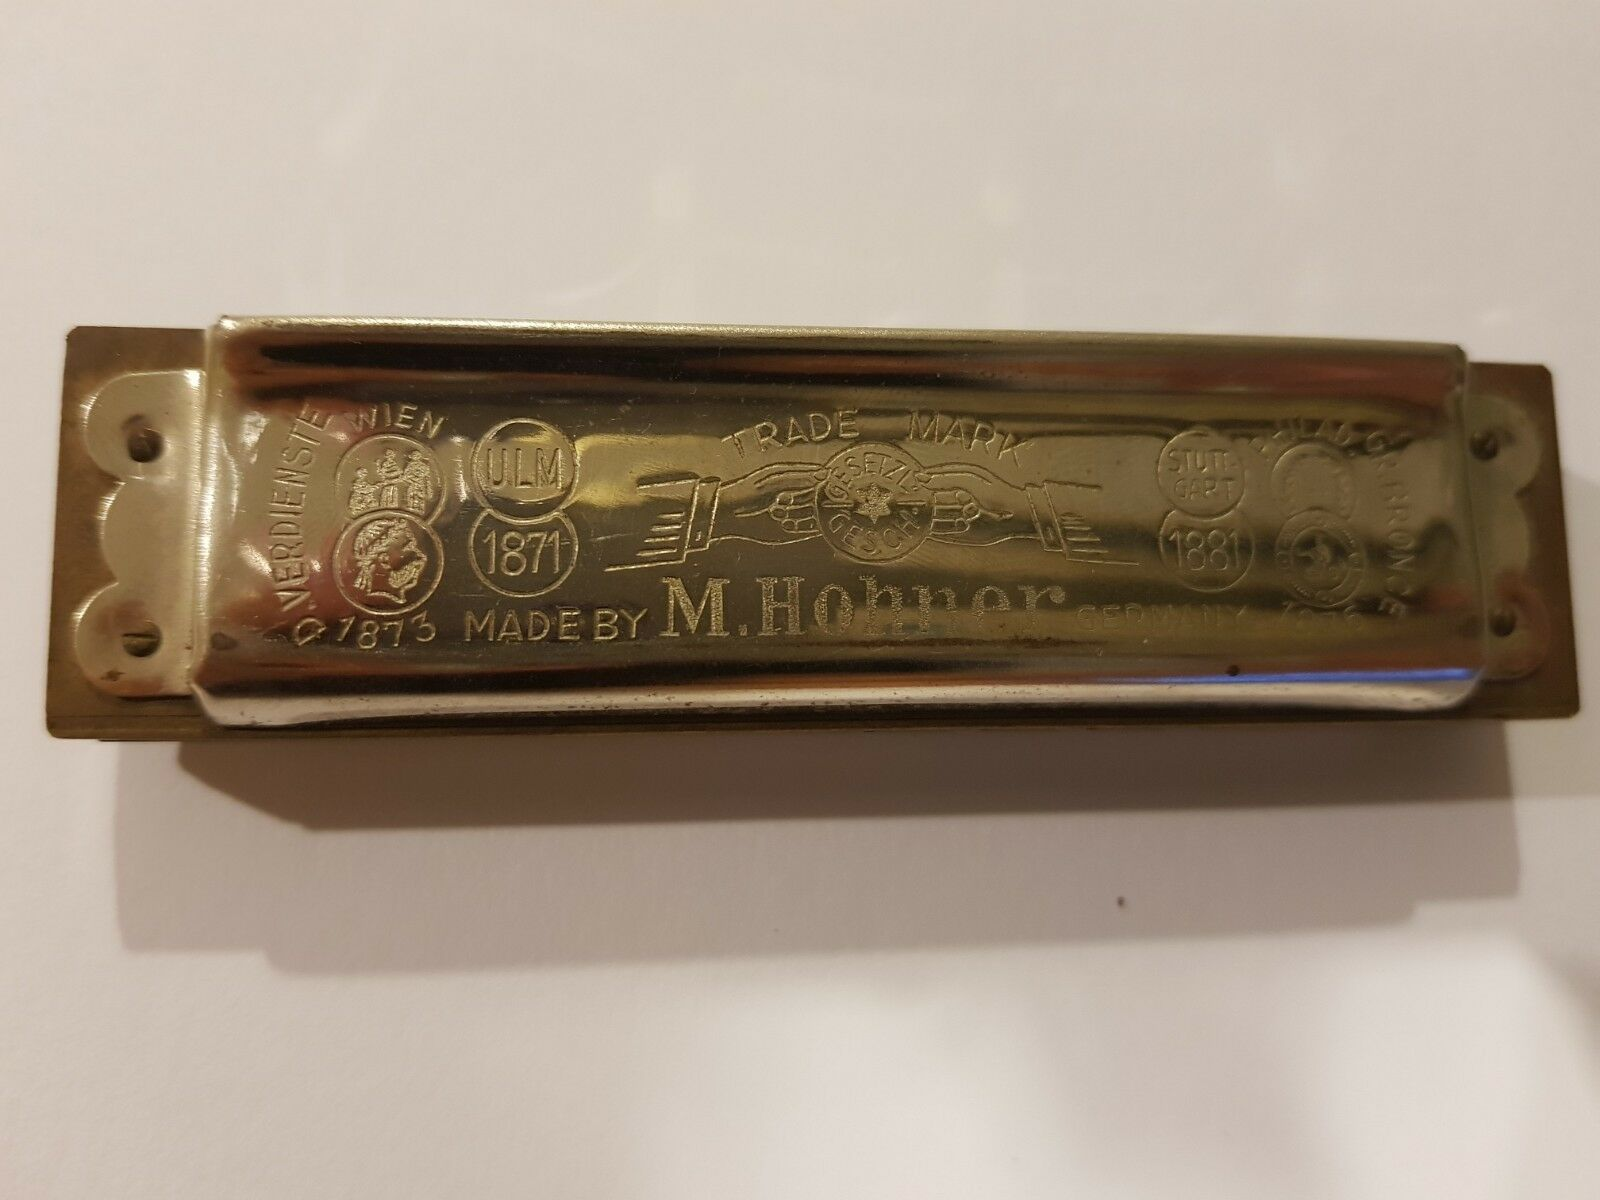 M. Hohner Vereins Harmonica Hohner Orchester 1920 - 1936 Vintage Free shipping.